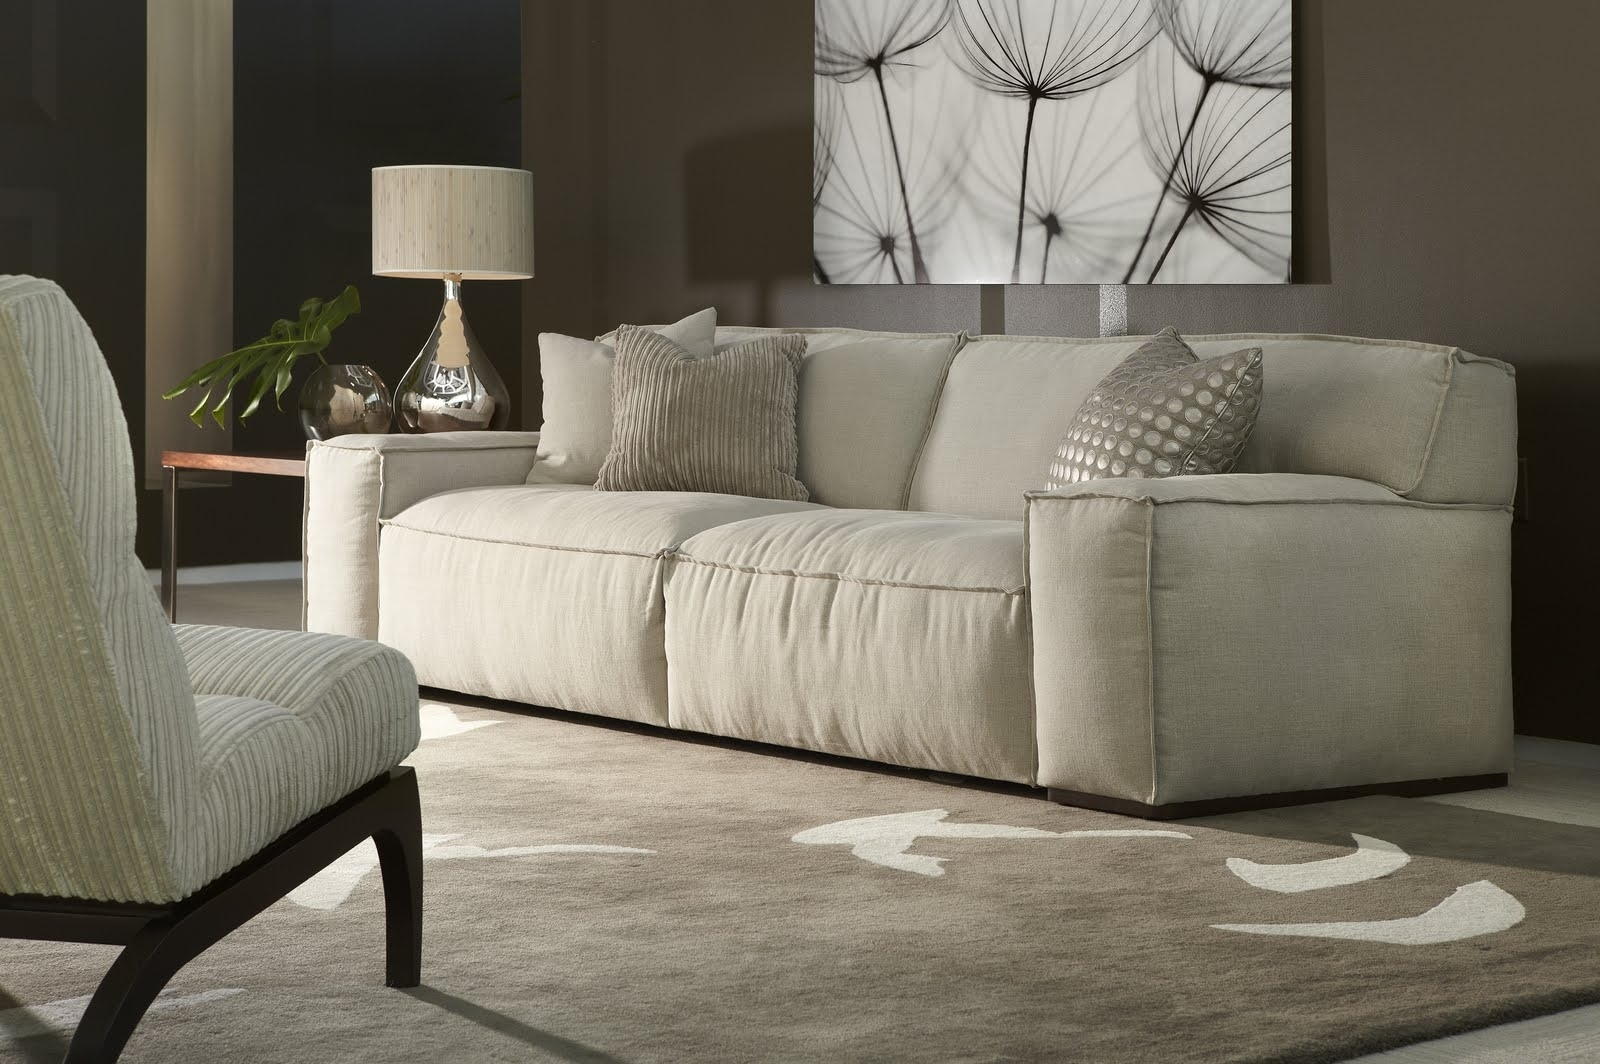 Favorite Sectional Sofa Design: Down Sectional Sofa Blend Wrapped Goose Regarding Down Feather Sectional Sofas (View 2 of 20)